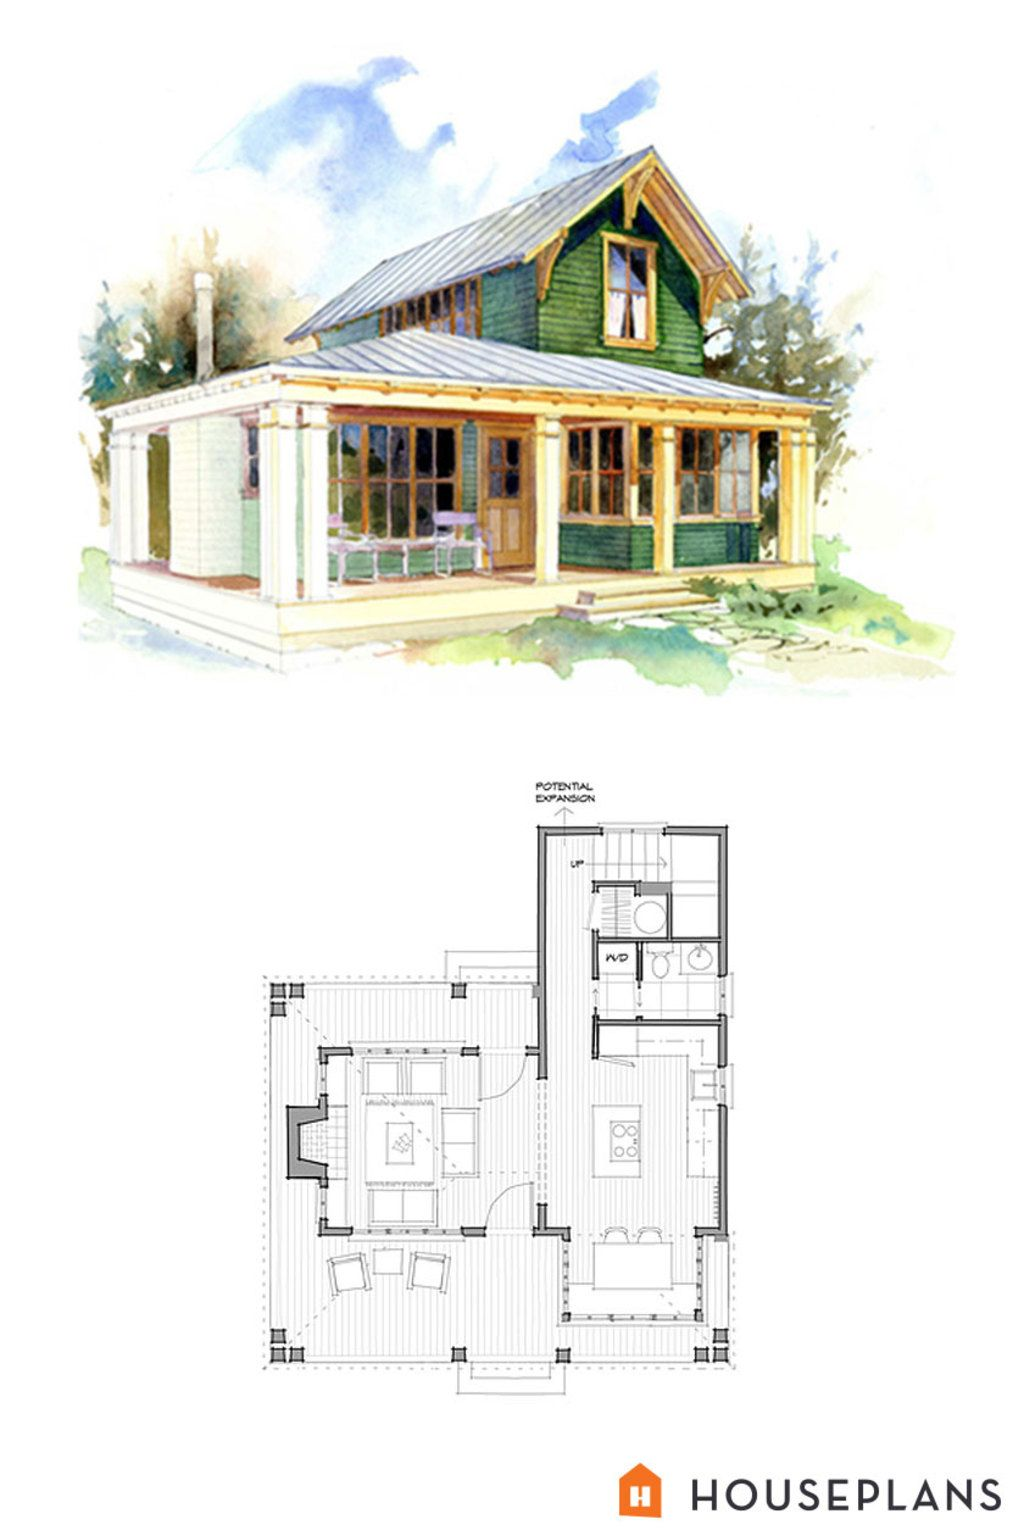 Cottage Style House Plan 1 Beds 1 Baths 796 Sq Ft Plan 118 107 Beach House Plans Beach Cottage Design Cottage Floor Plans